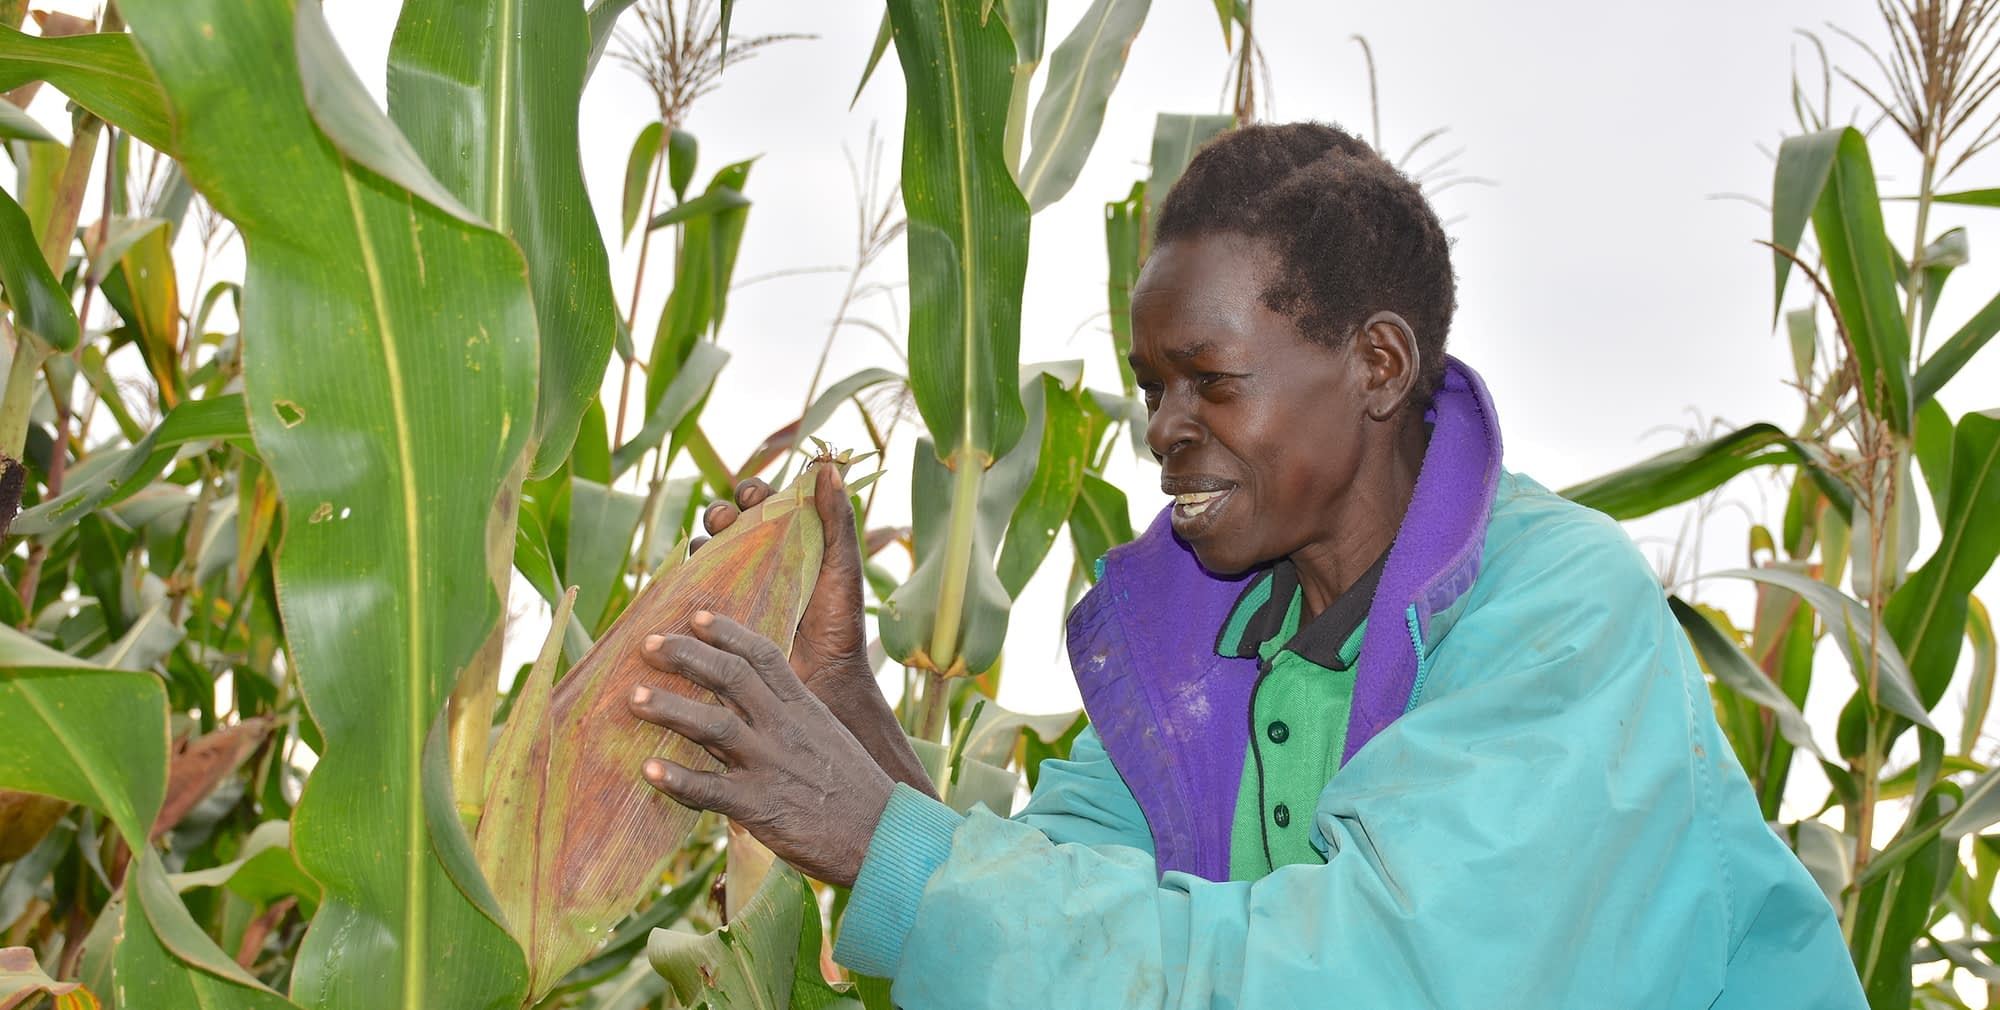 Dorine Akoth, a smallholder demo plot farmer in Gulu, northern Uganda, shows a maize plant on her plot on which she has planted several varieties that have passed through CIMMYT's breeding pipeline. (Photo: Joshua Masinde/CIMMYT)